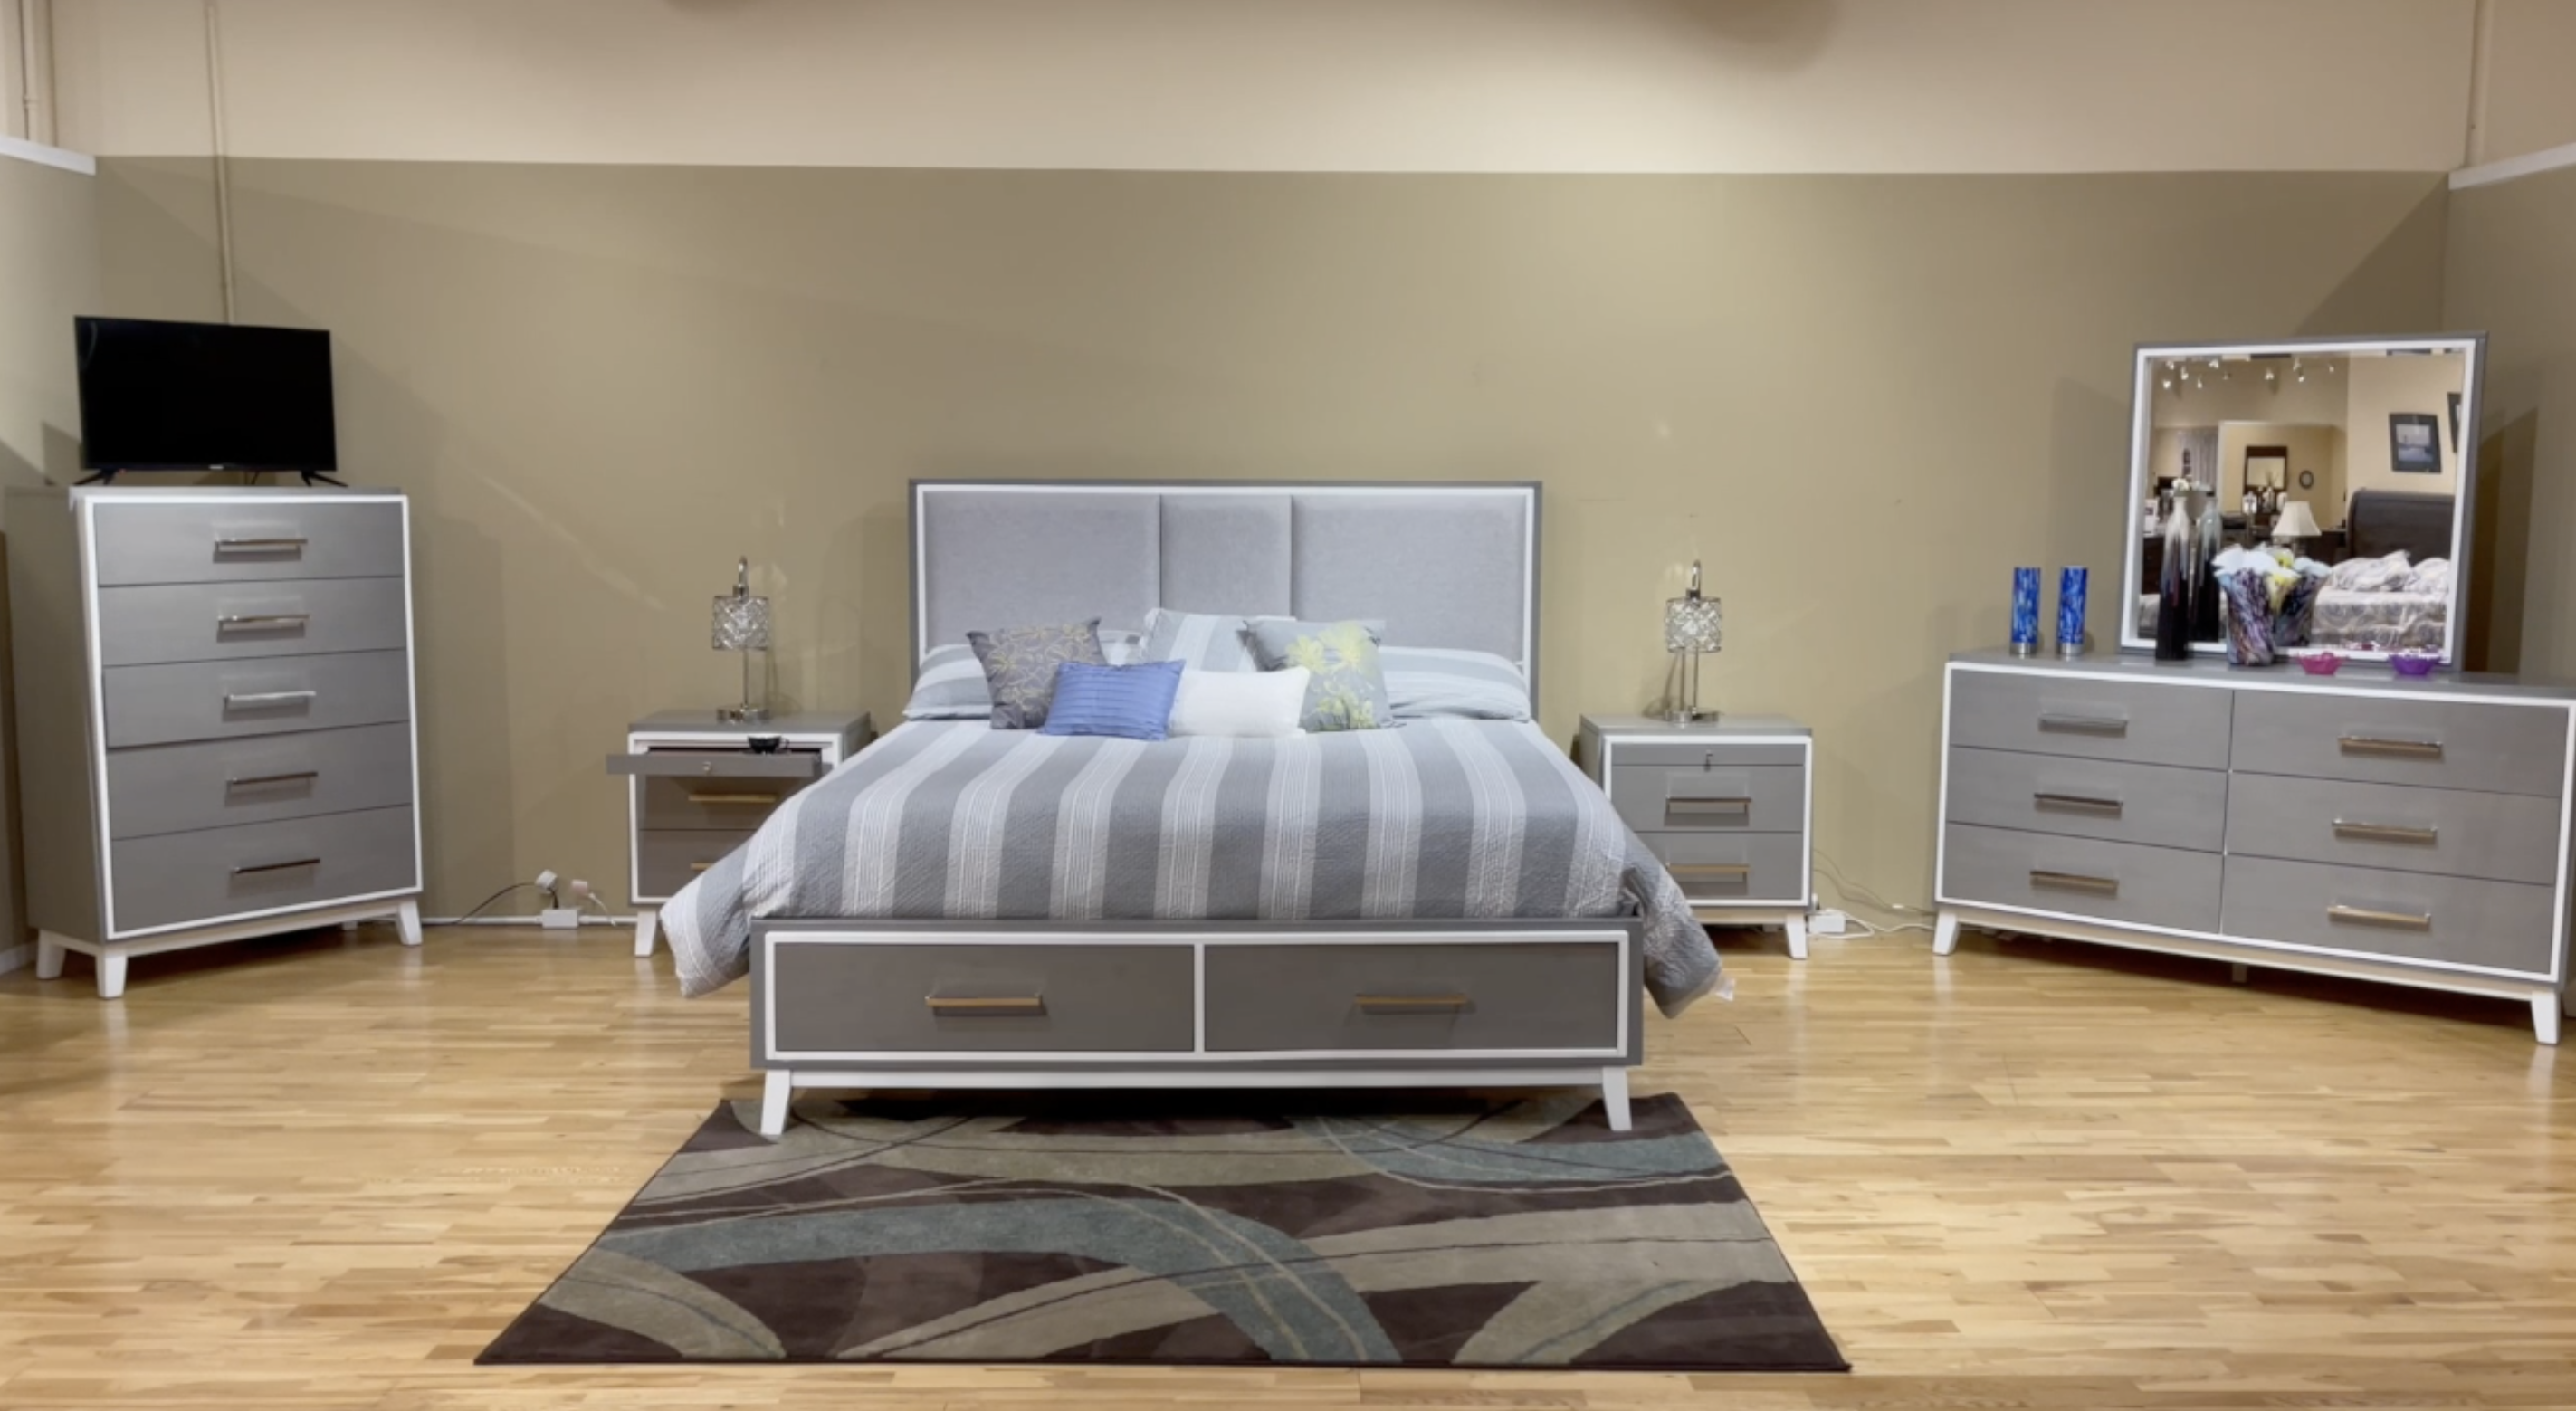 Zephyr Bedroom Set by New Classic at Beds N Stuff